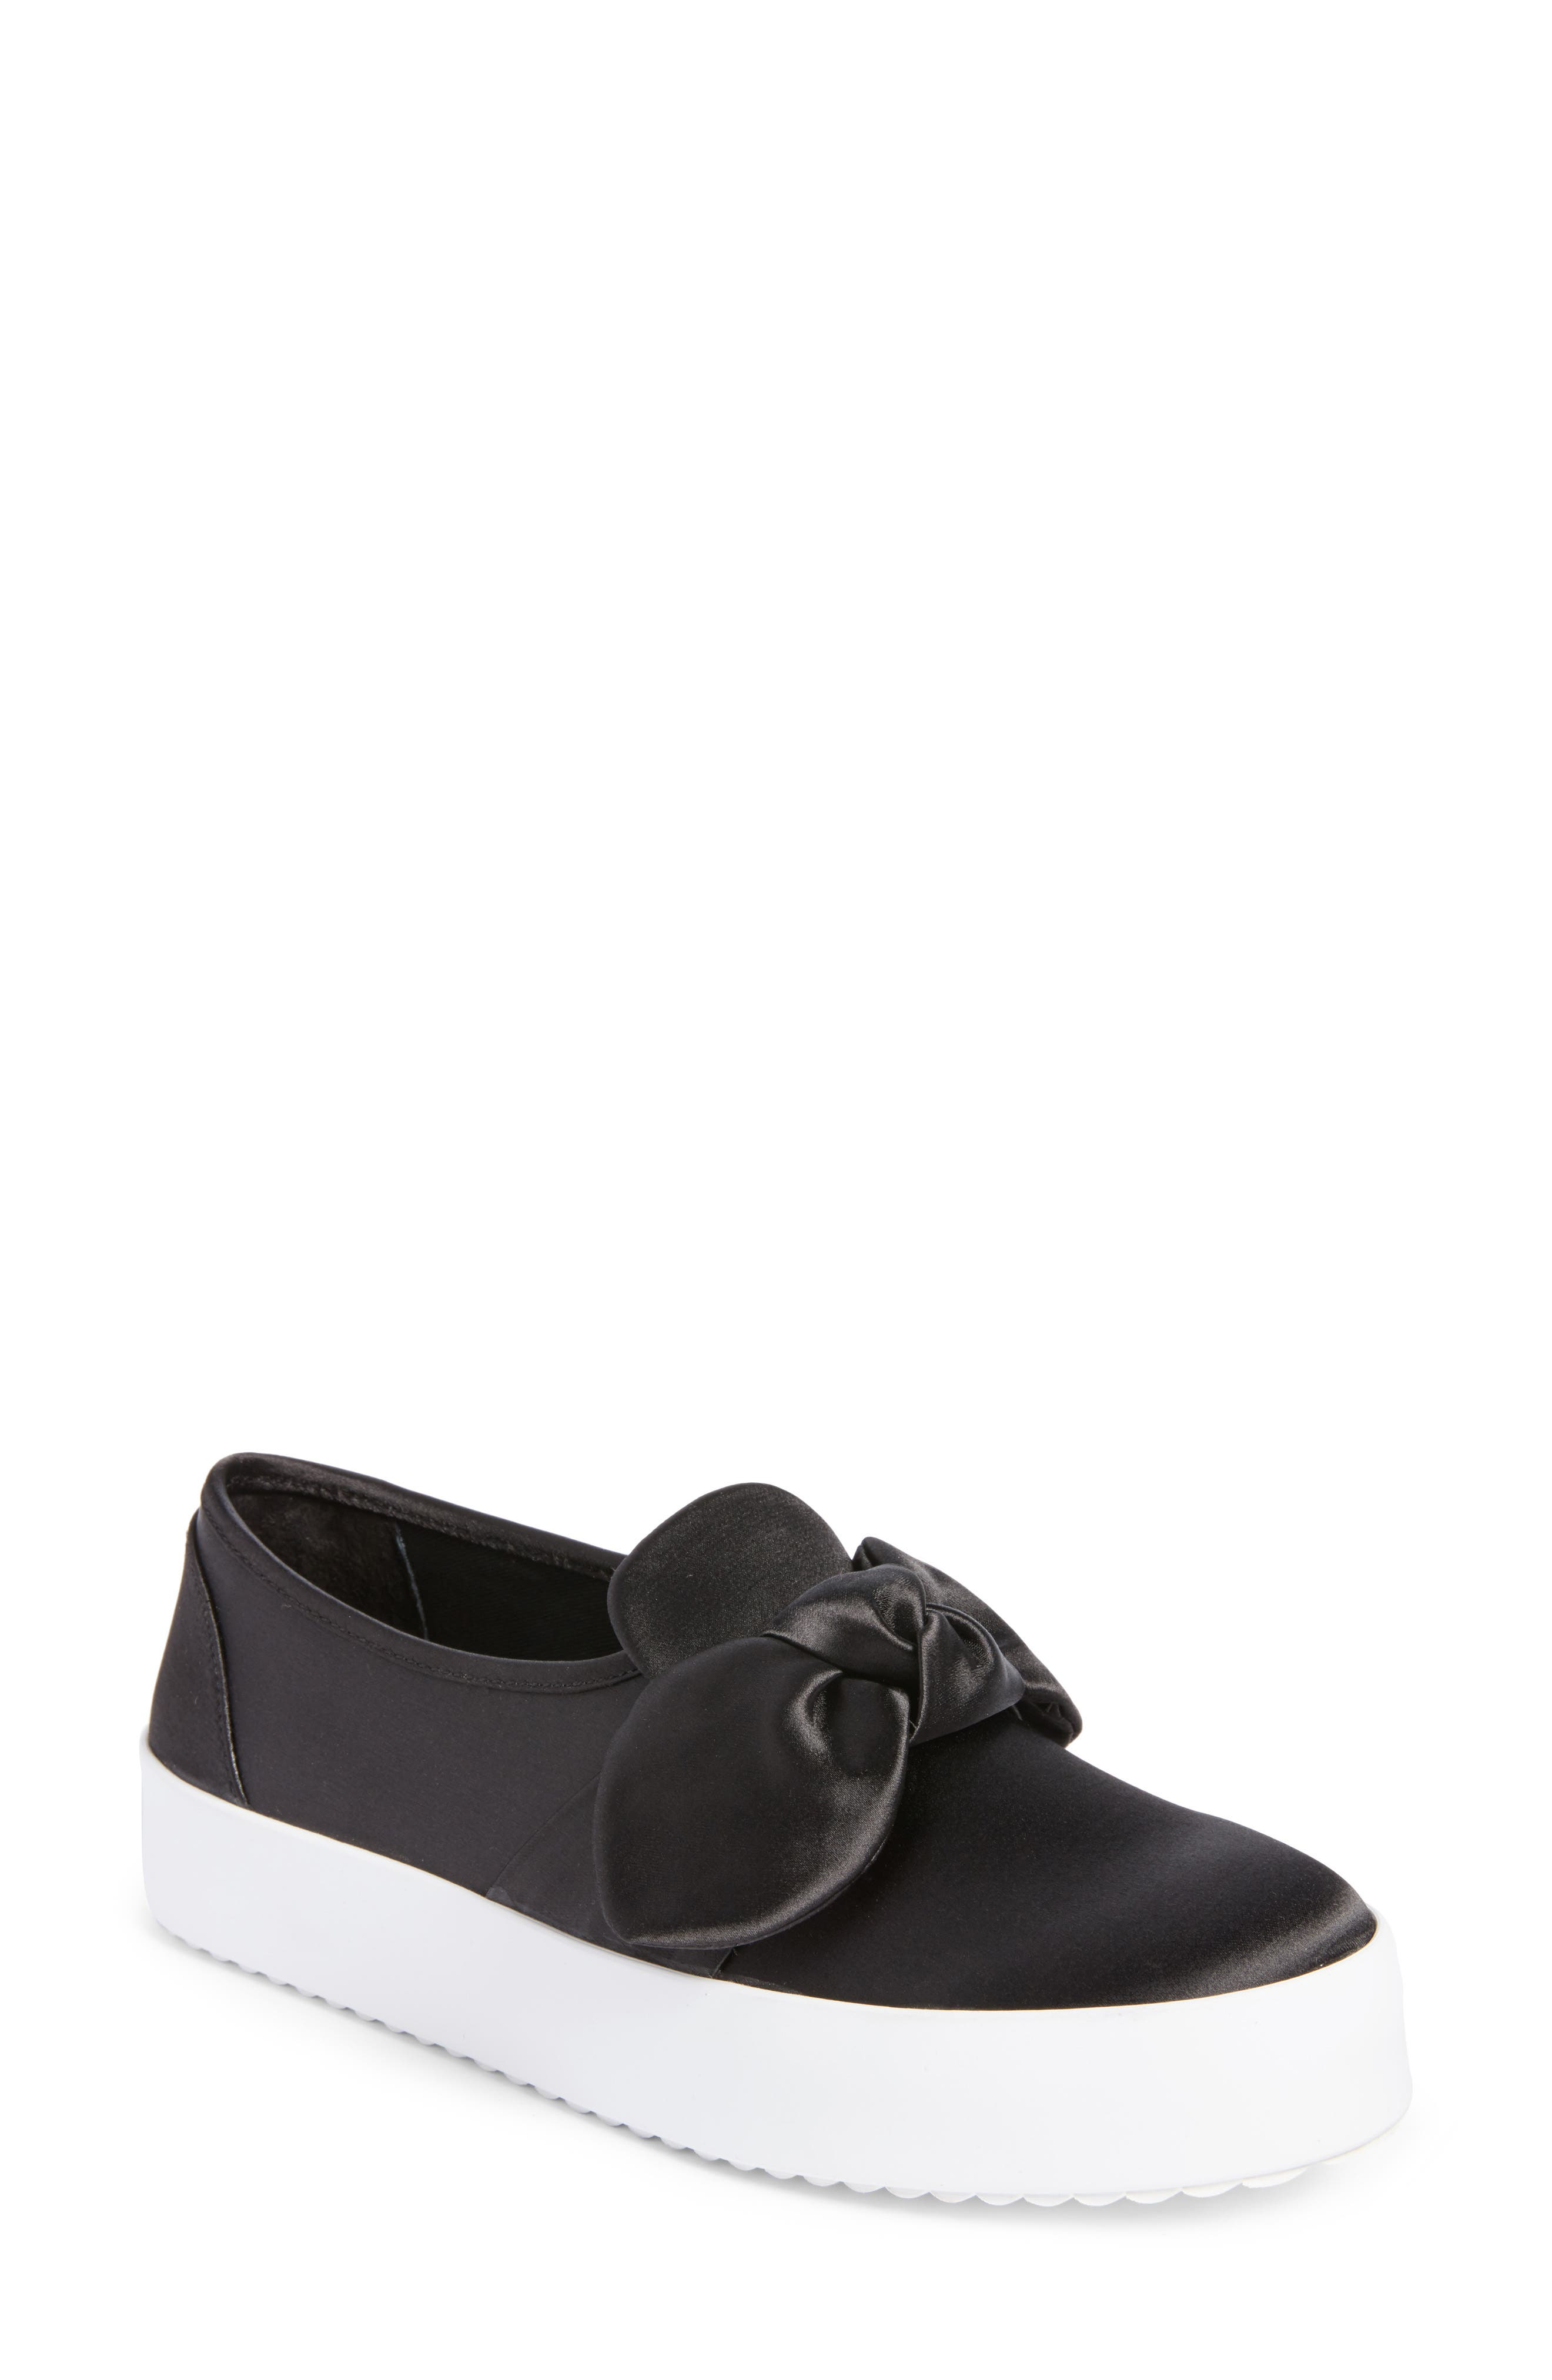 Stacey Bow Platform Sneaker,                             Main thumbnail 1, color,                             002